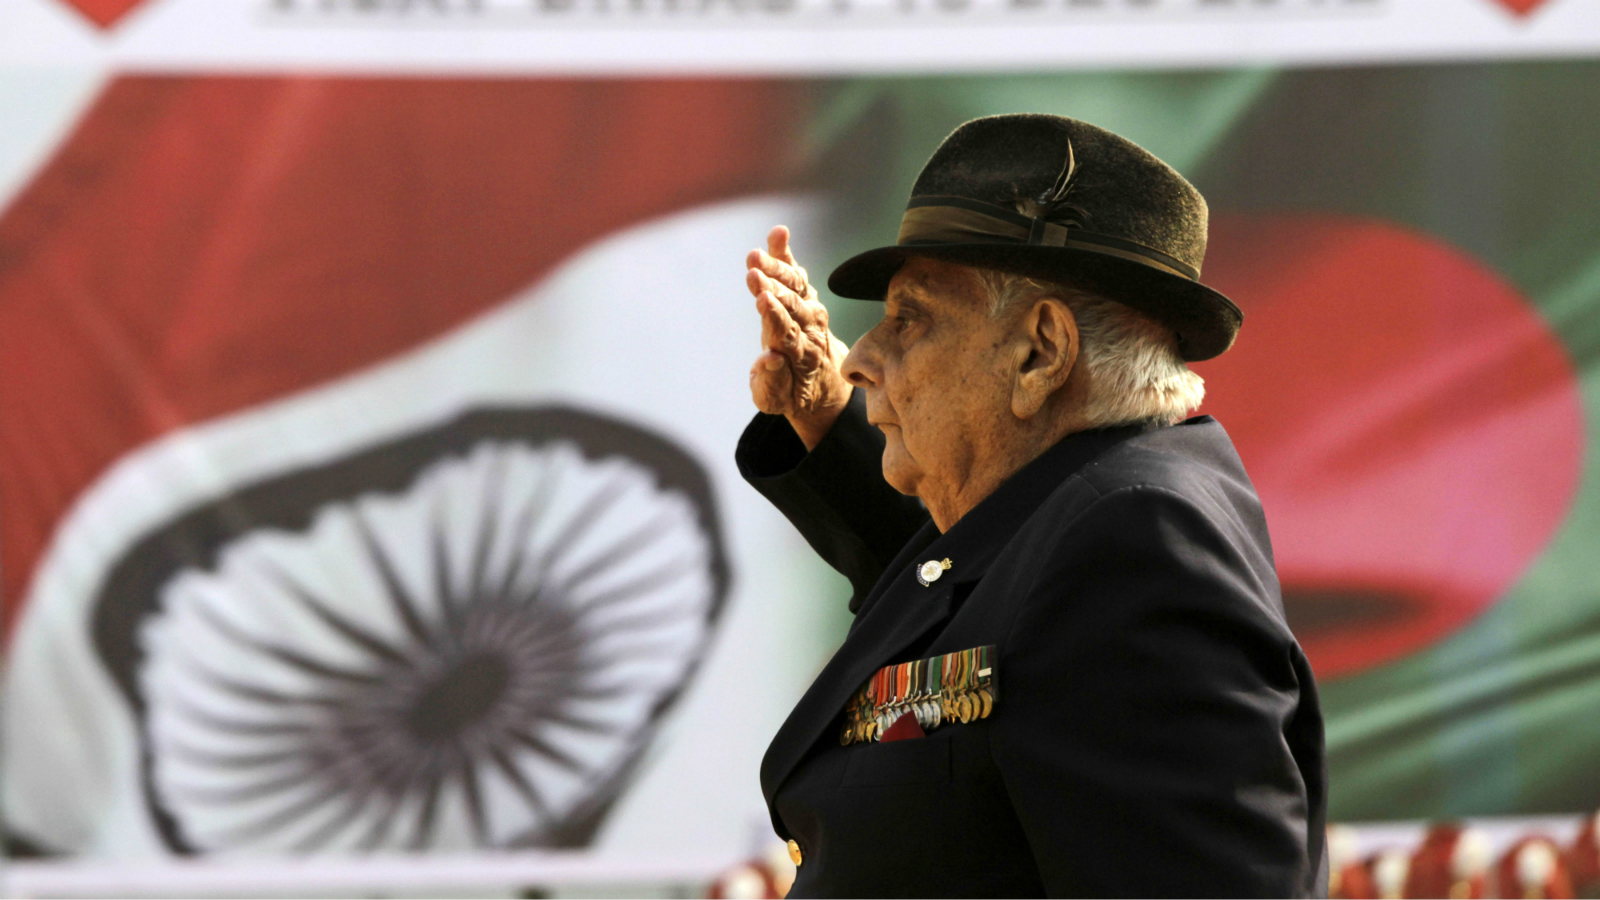 Indian Army retired Lieutenant Colonel and a 1971 war hero J.F.R. Jacob, salutes at the martyrs' column during Victory Day celebrations in Kolkata, India, Sunday, Dec. 16, 2012. The Indian Army celebrates Victory Day on December 16, to commemorate its victory over Pakistan in 1971, which gave birth of a new nation Bangladesh. (AP Photo/Bikas Das)